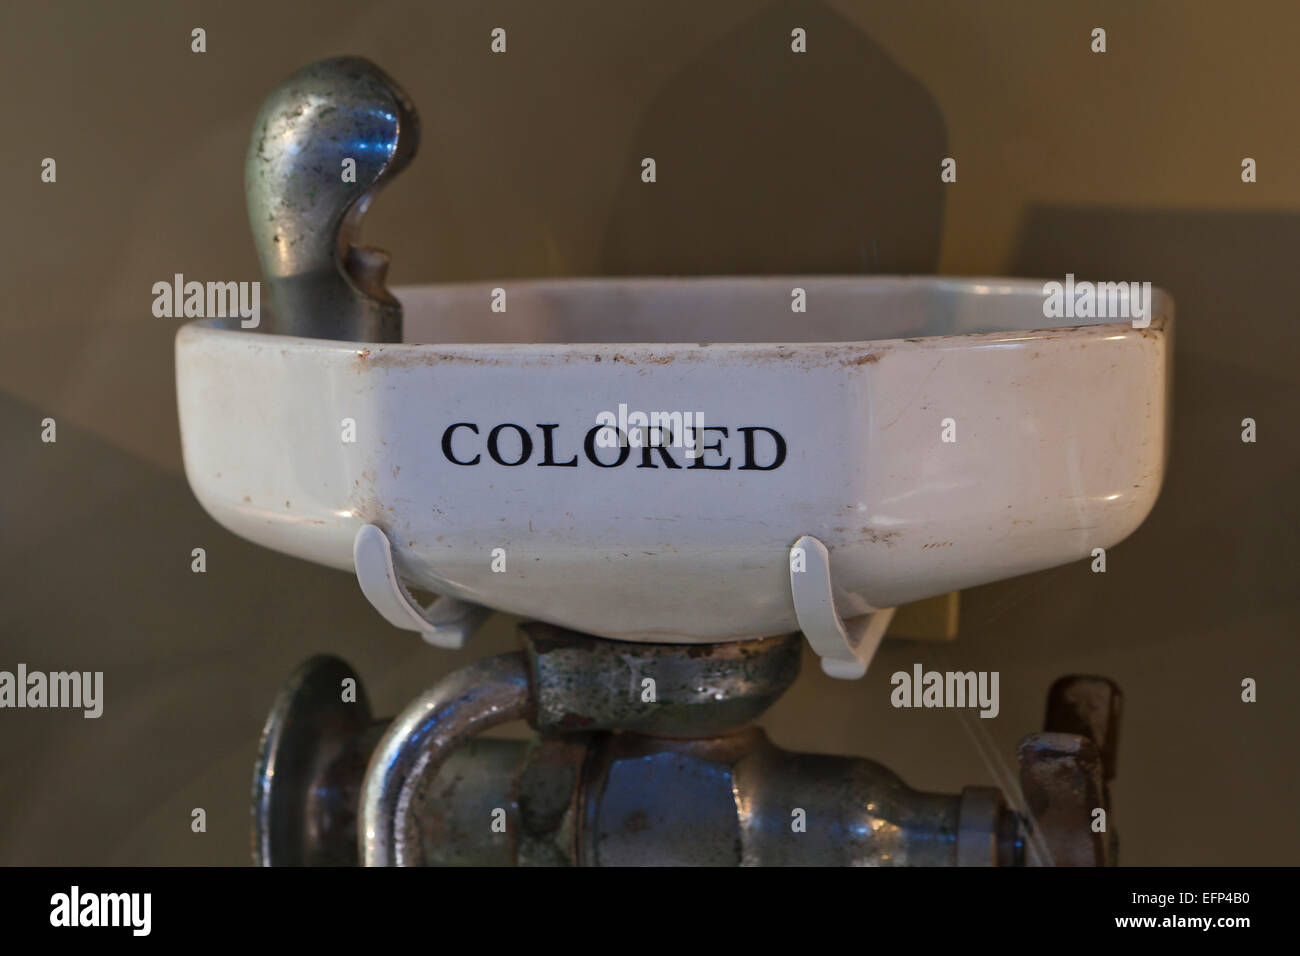 Segregated drinking fountain, 1940s / 1950s - USA - Stock Image